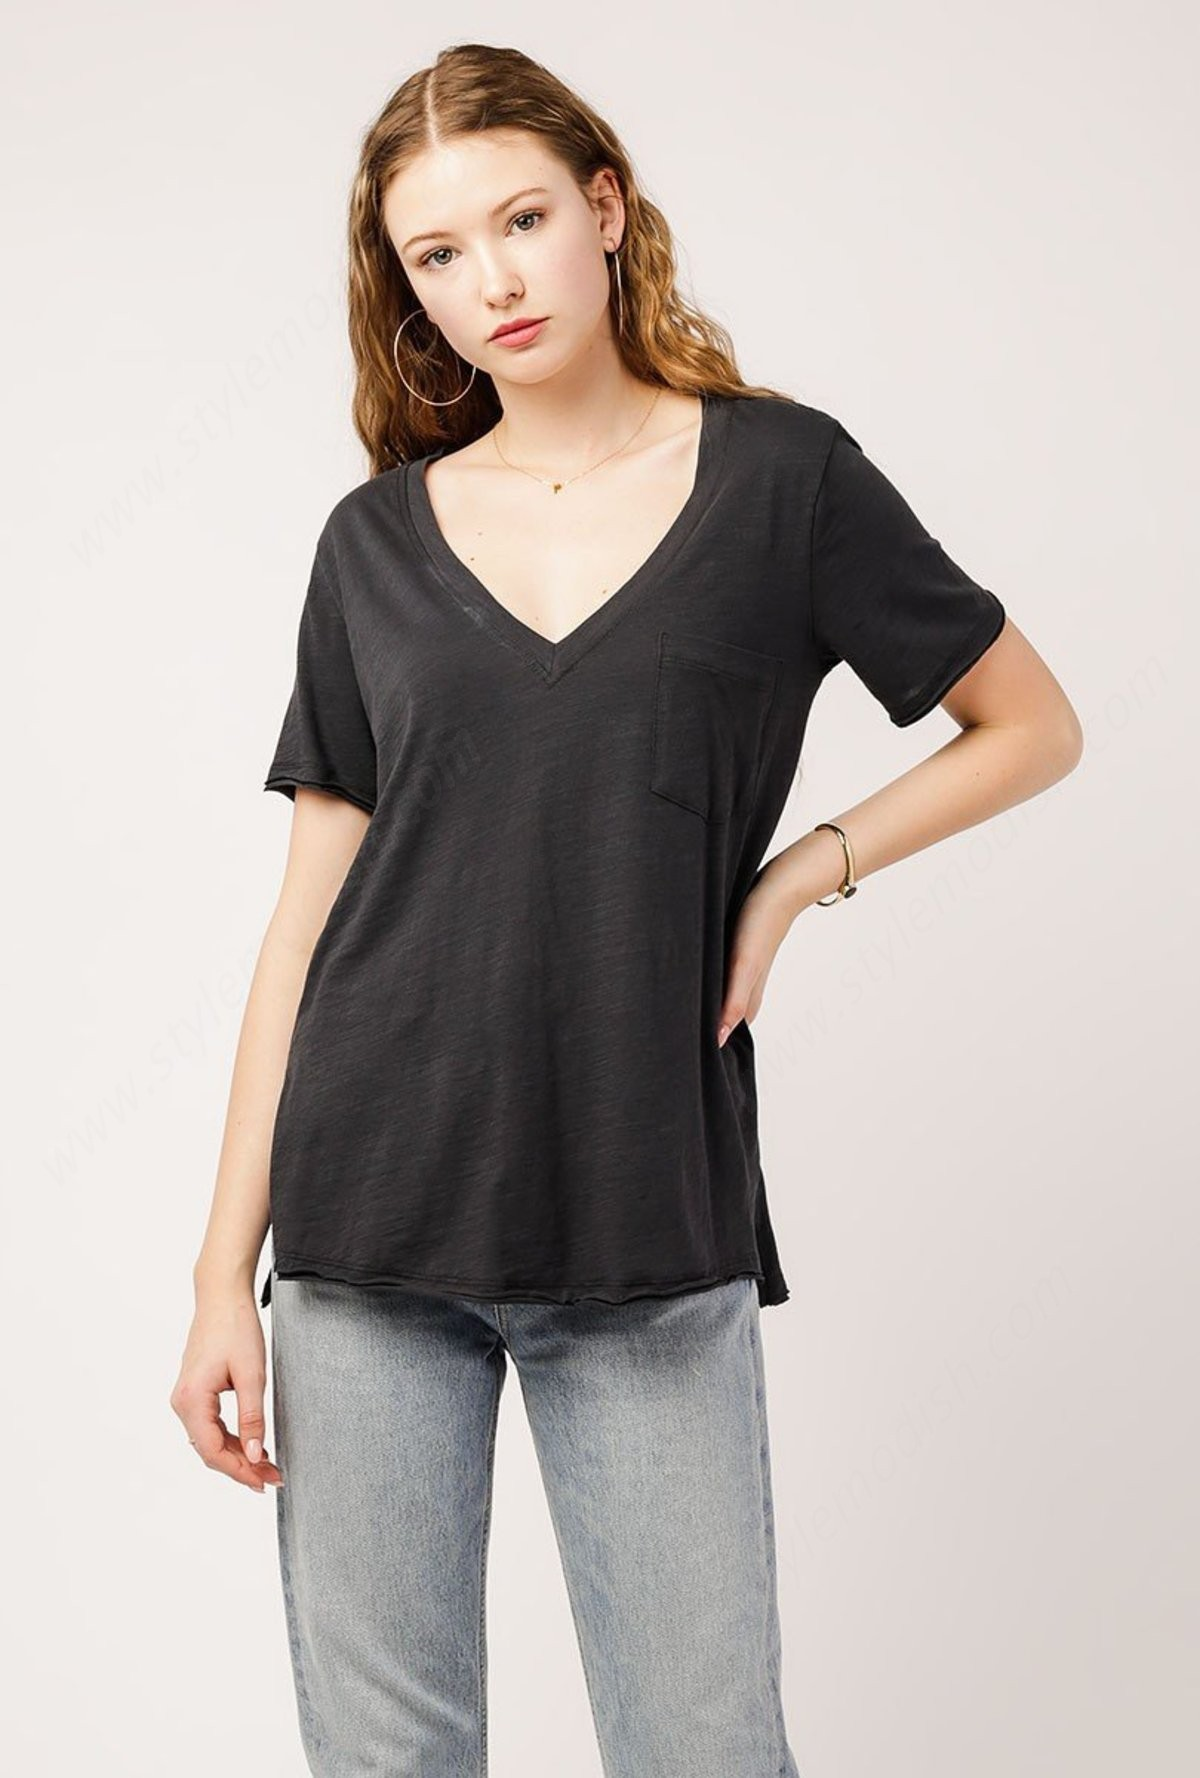 Woman's Azalea V Neck Knit T-Shirts - Charcoal - Woman's Azalea V Neck Knit T-Shirts - Charcoal